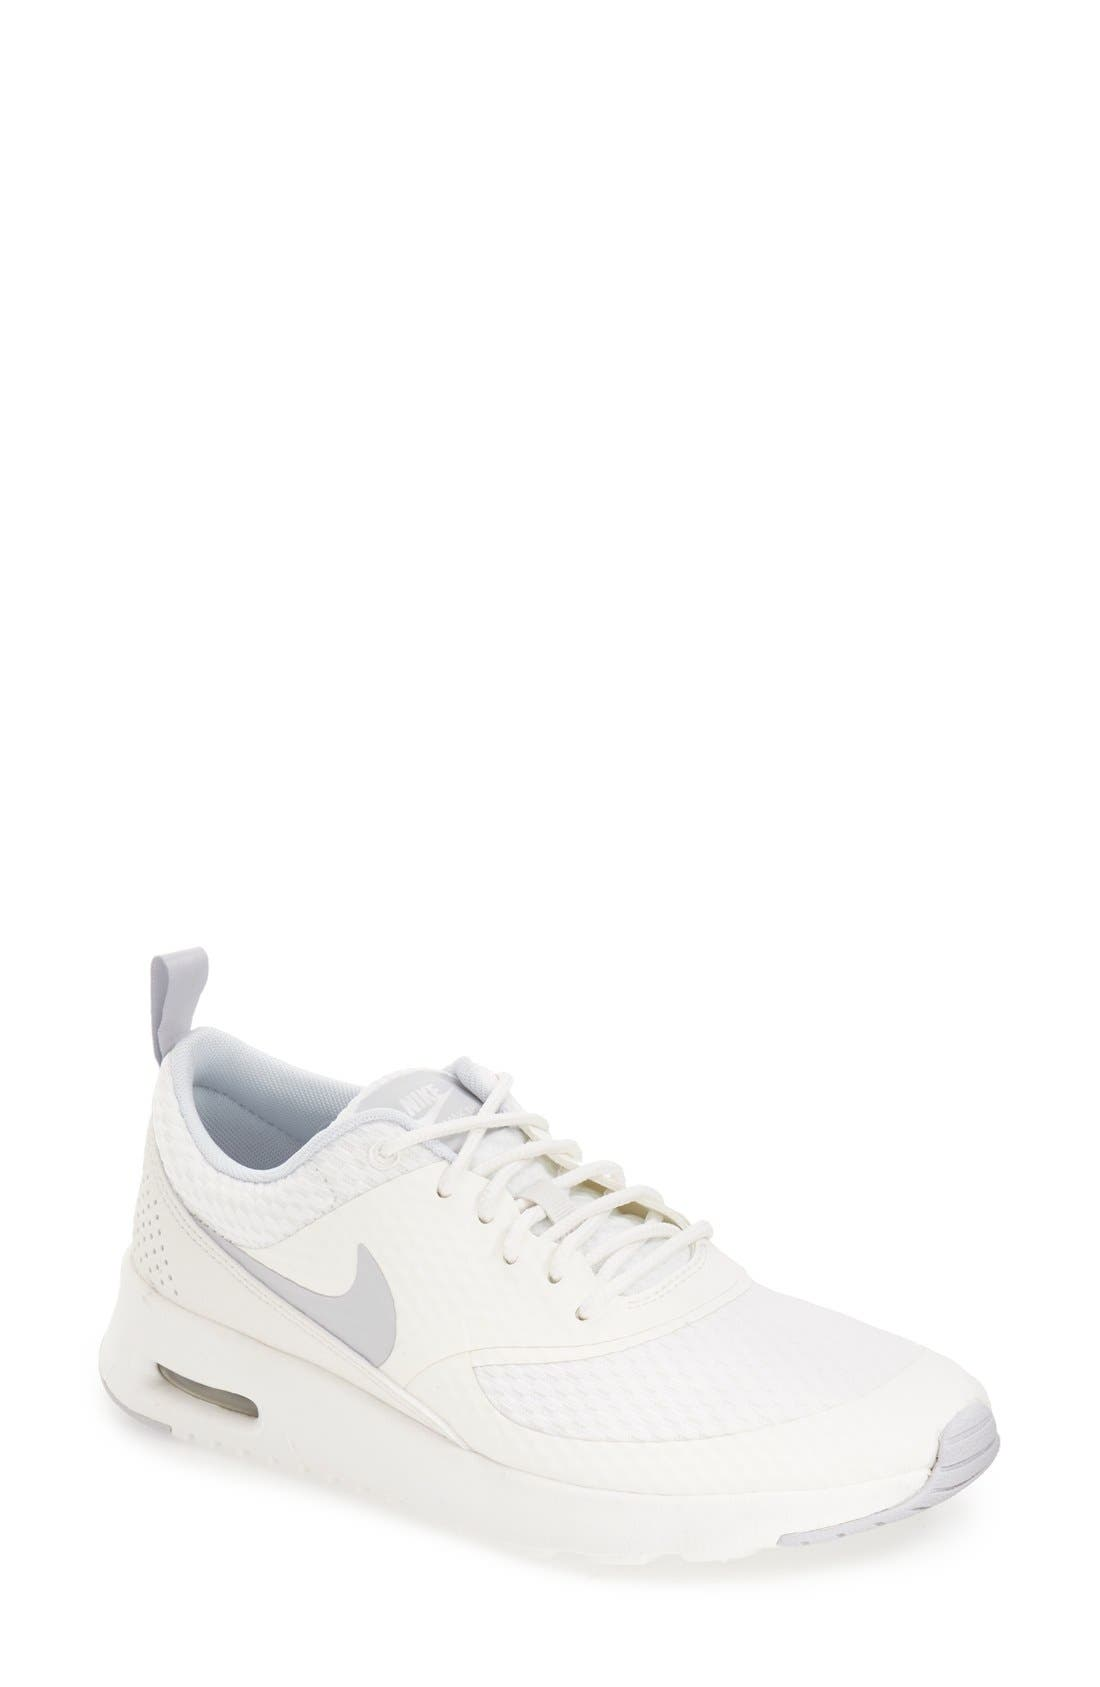 Main Image - Nike 'Air Max Thea' Sneaker (Women)